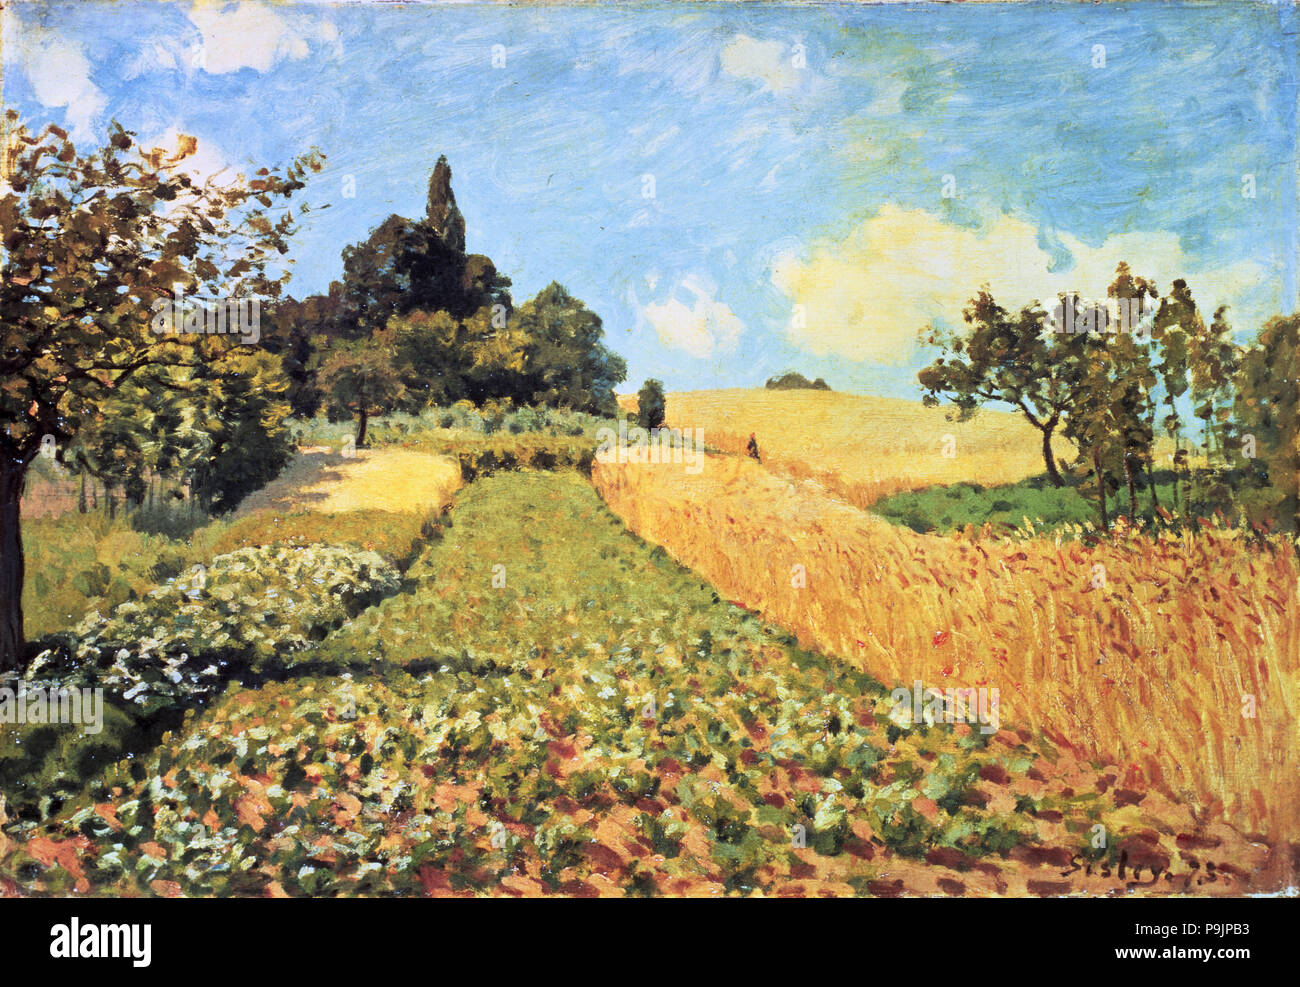 'Wheat Field', oil Painting by Alfred Sisley. - Stock Image